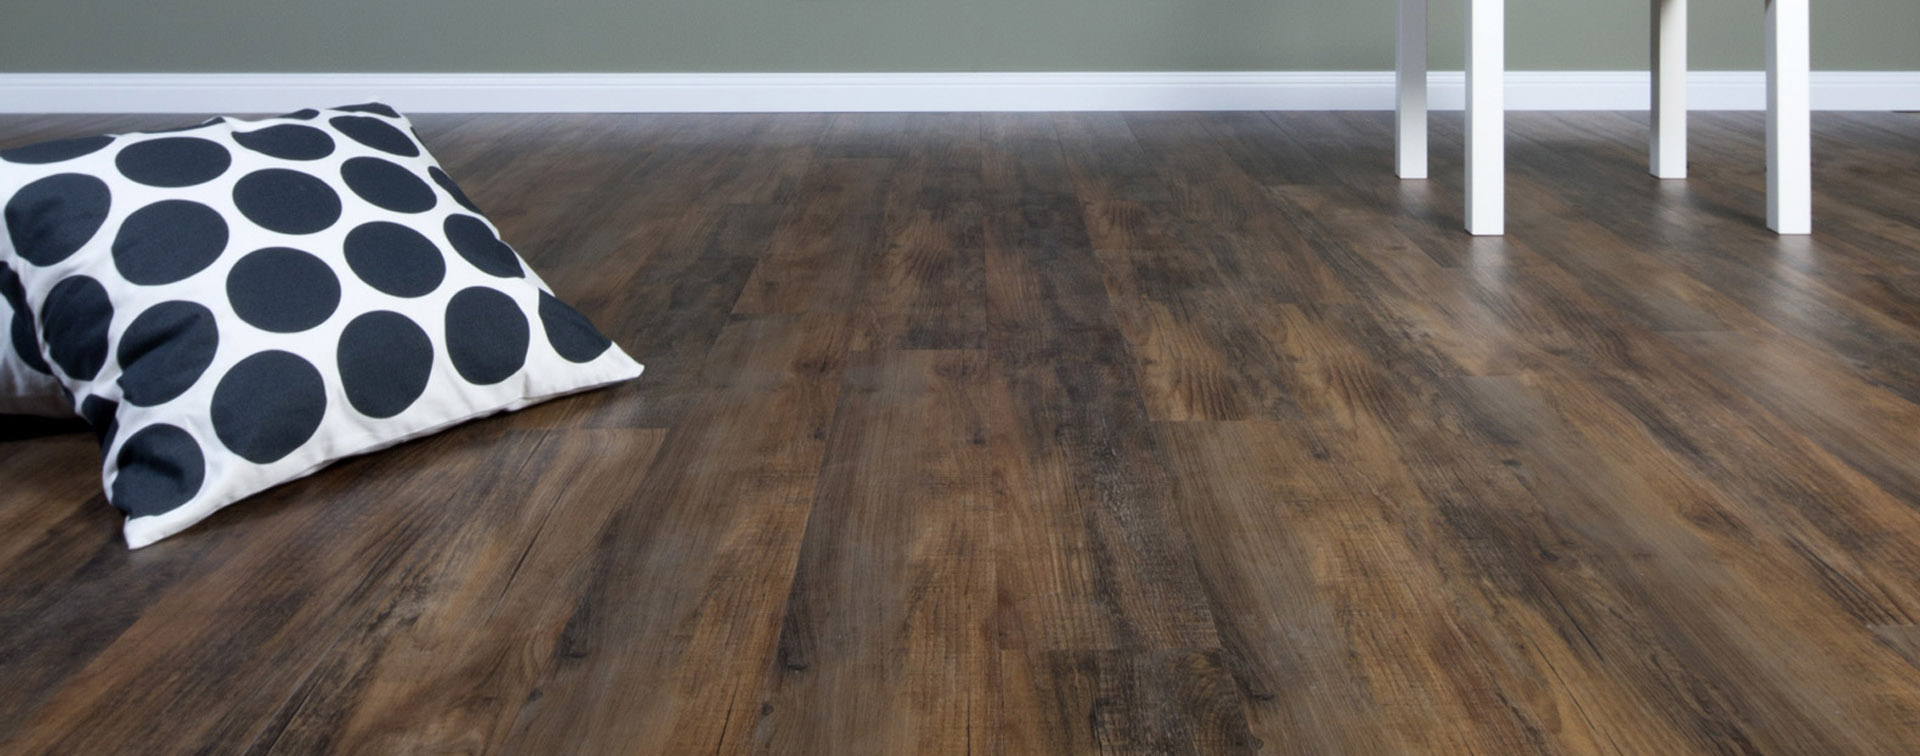 AFFORDABLE FLOORING Kingston Business Centre Stockport SK3 0AL